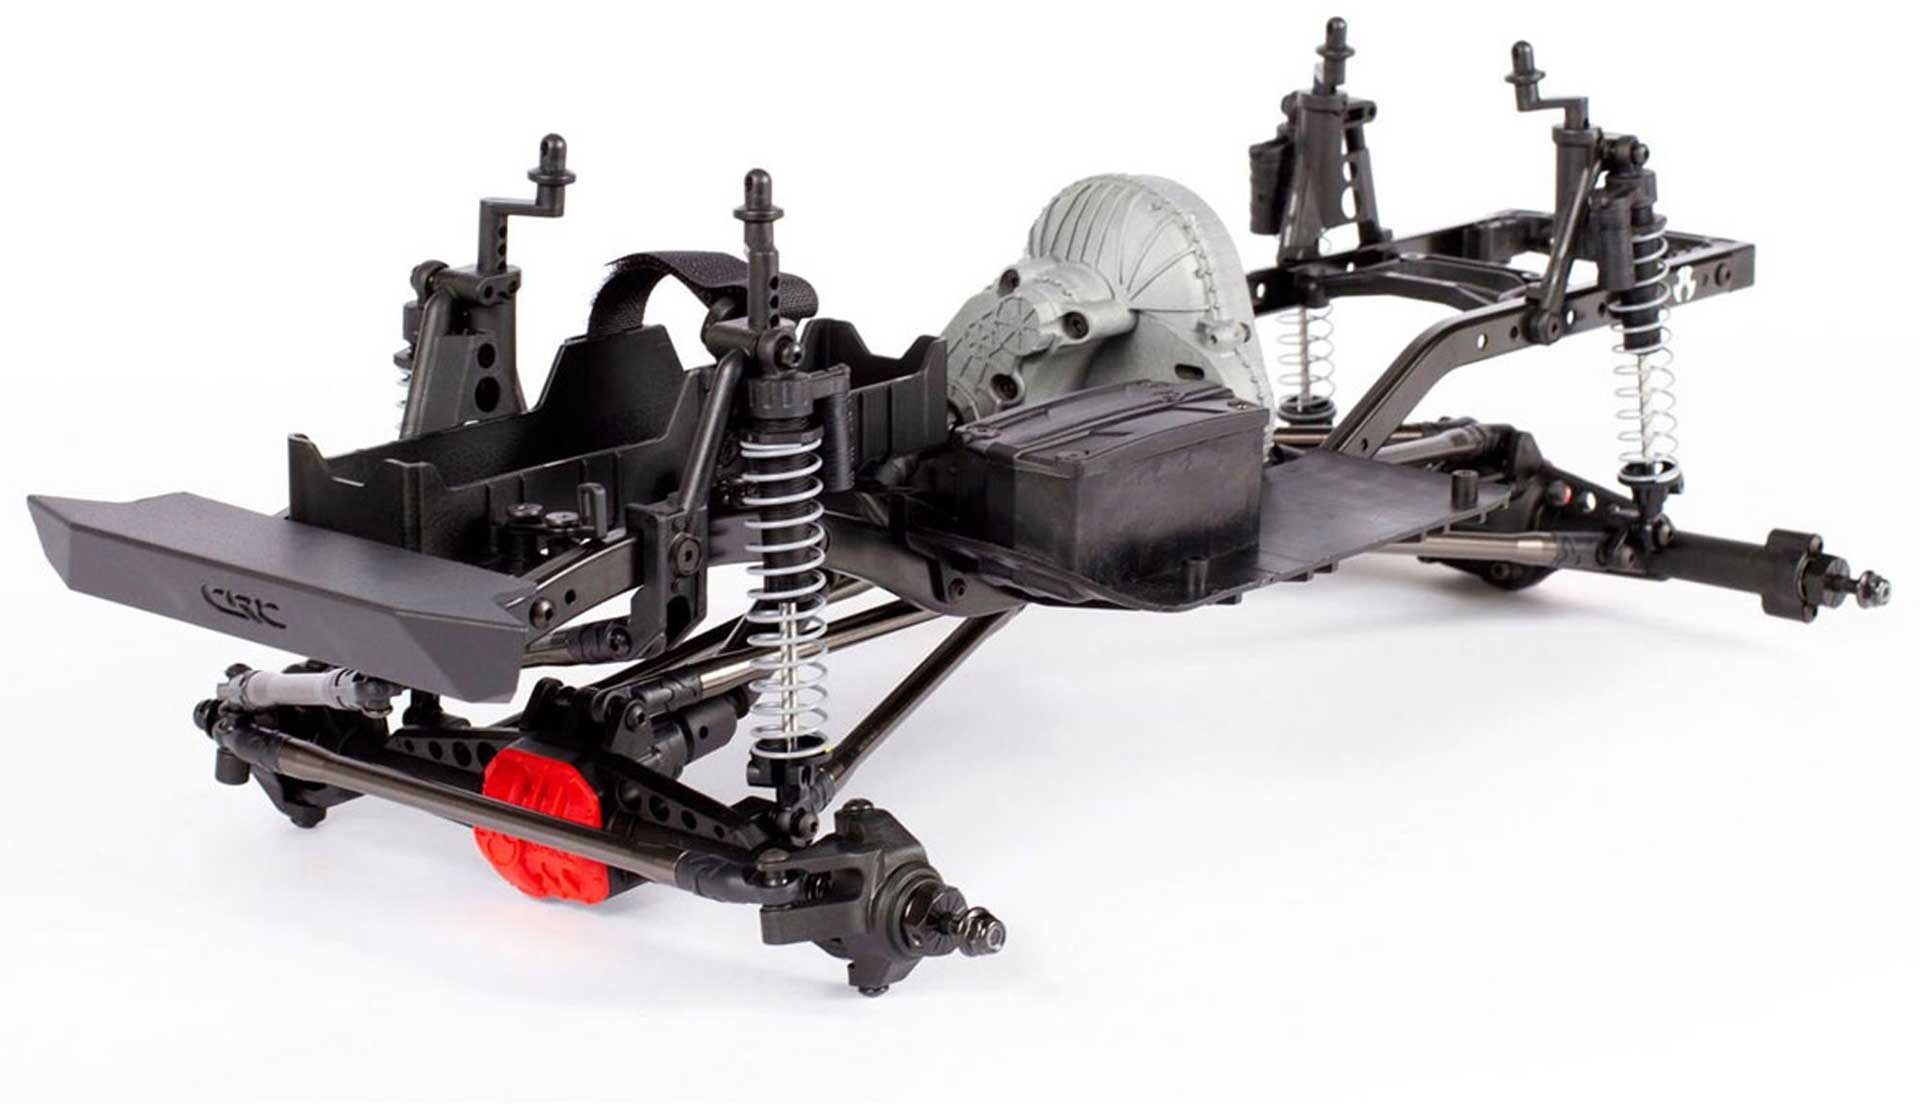 AXIAL SCX10 II RAW BUILDERS KIT 1/10 CRAWLER CHASSIS